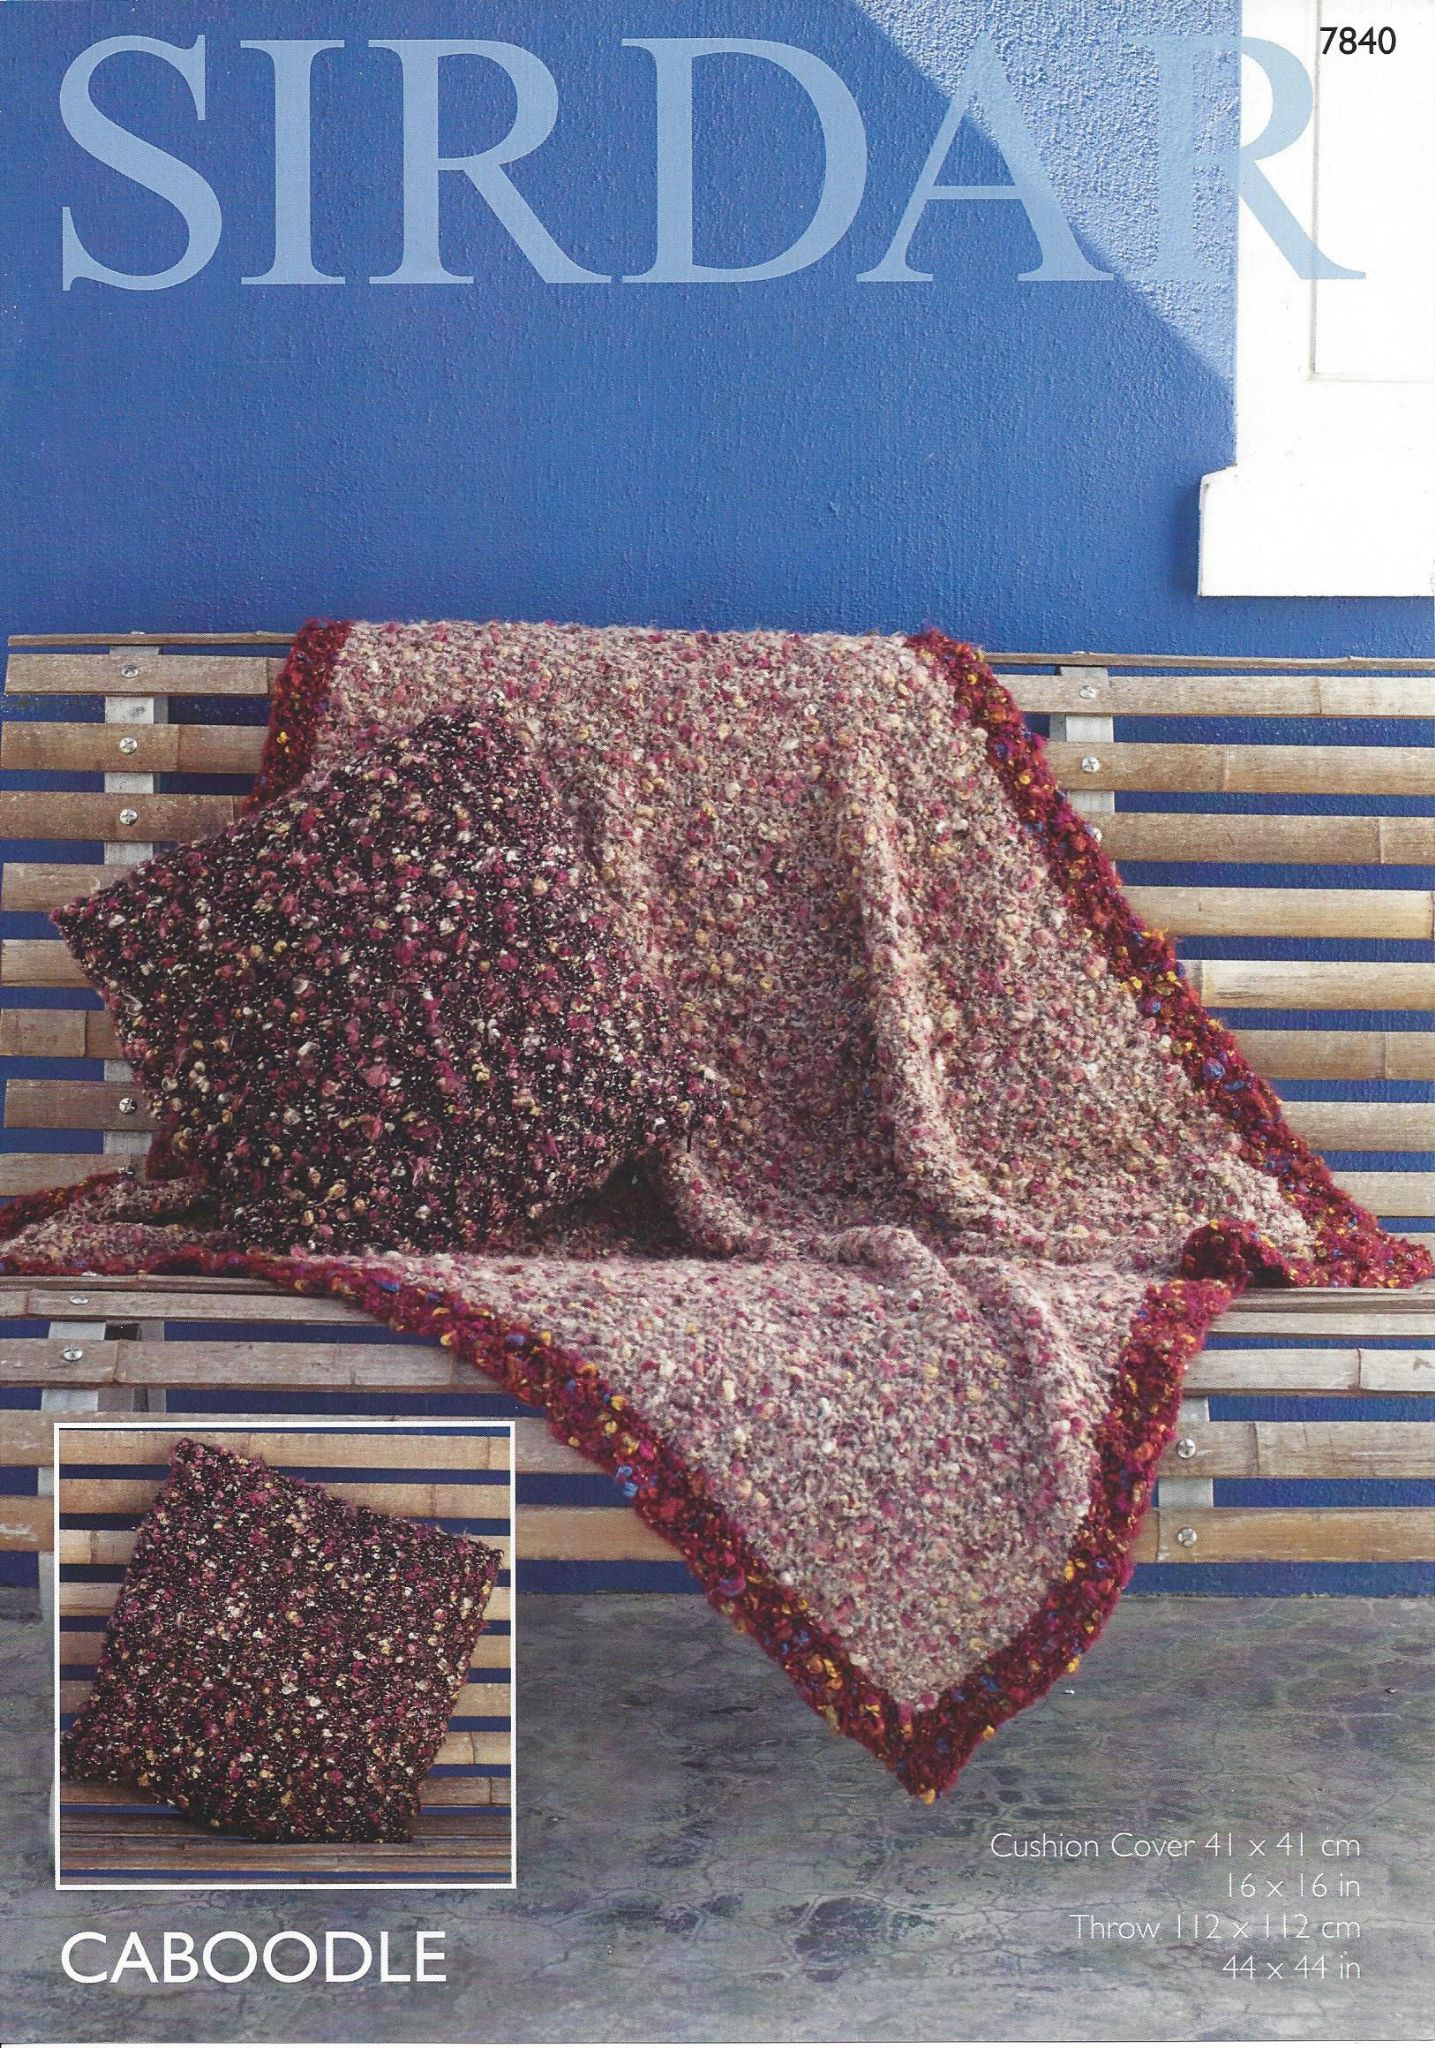 Sirdar Caboodle - 7840 Throw & Cushion Cover Knitting Pattern